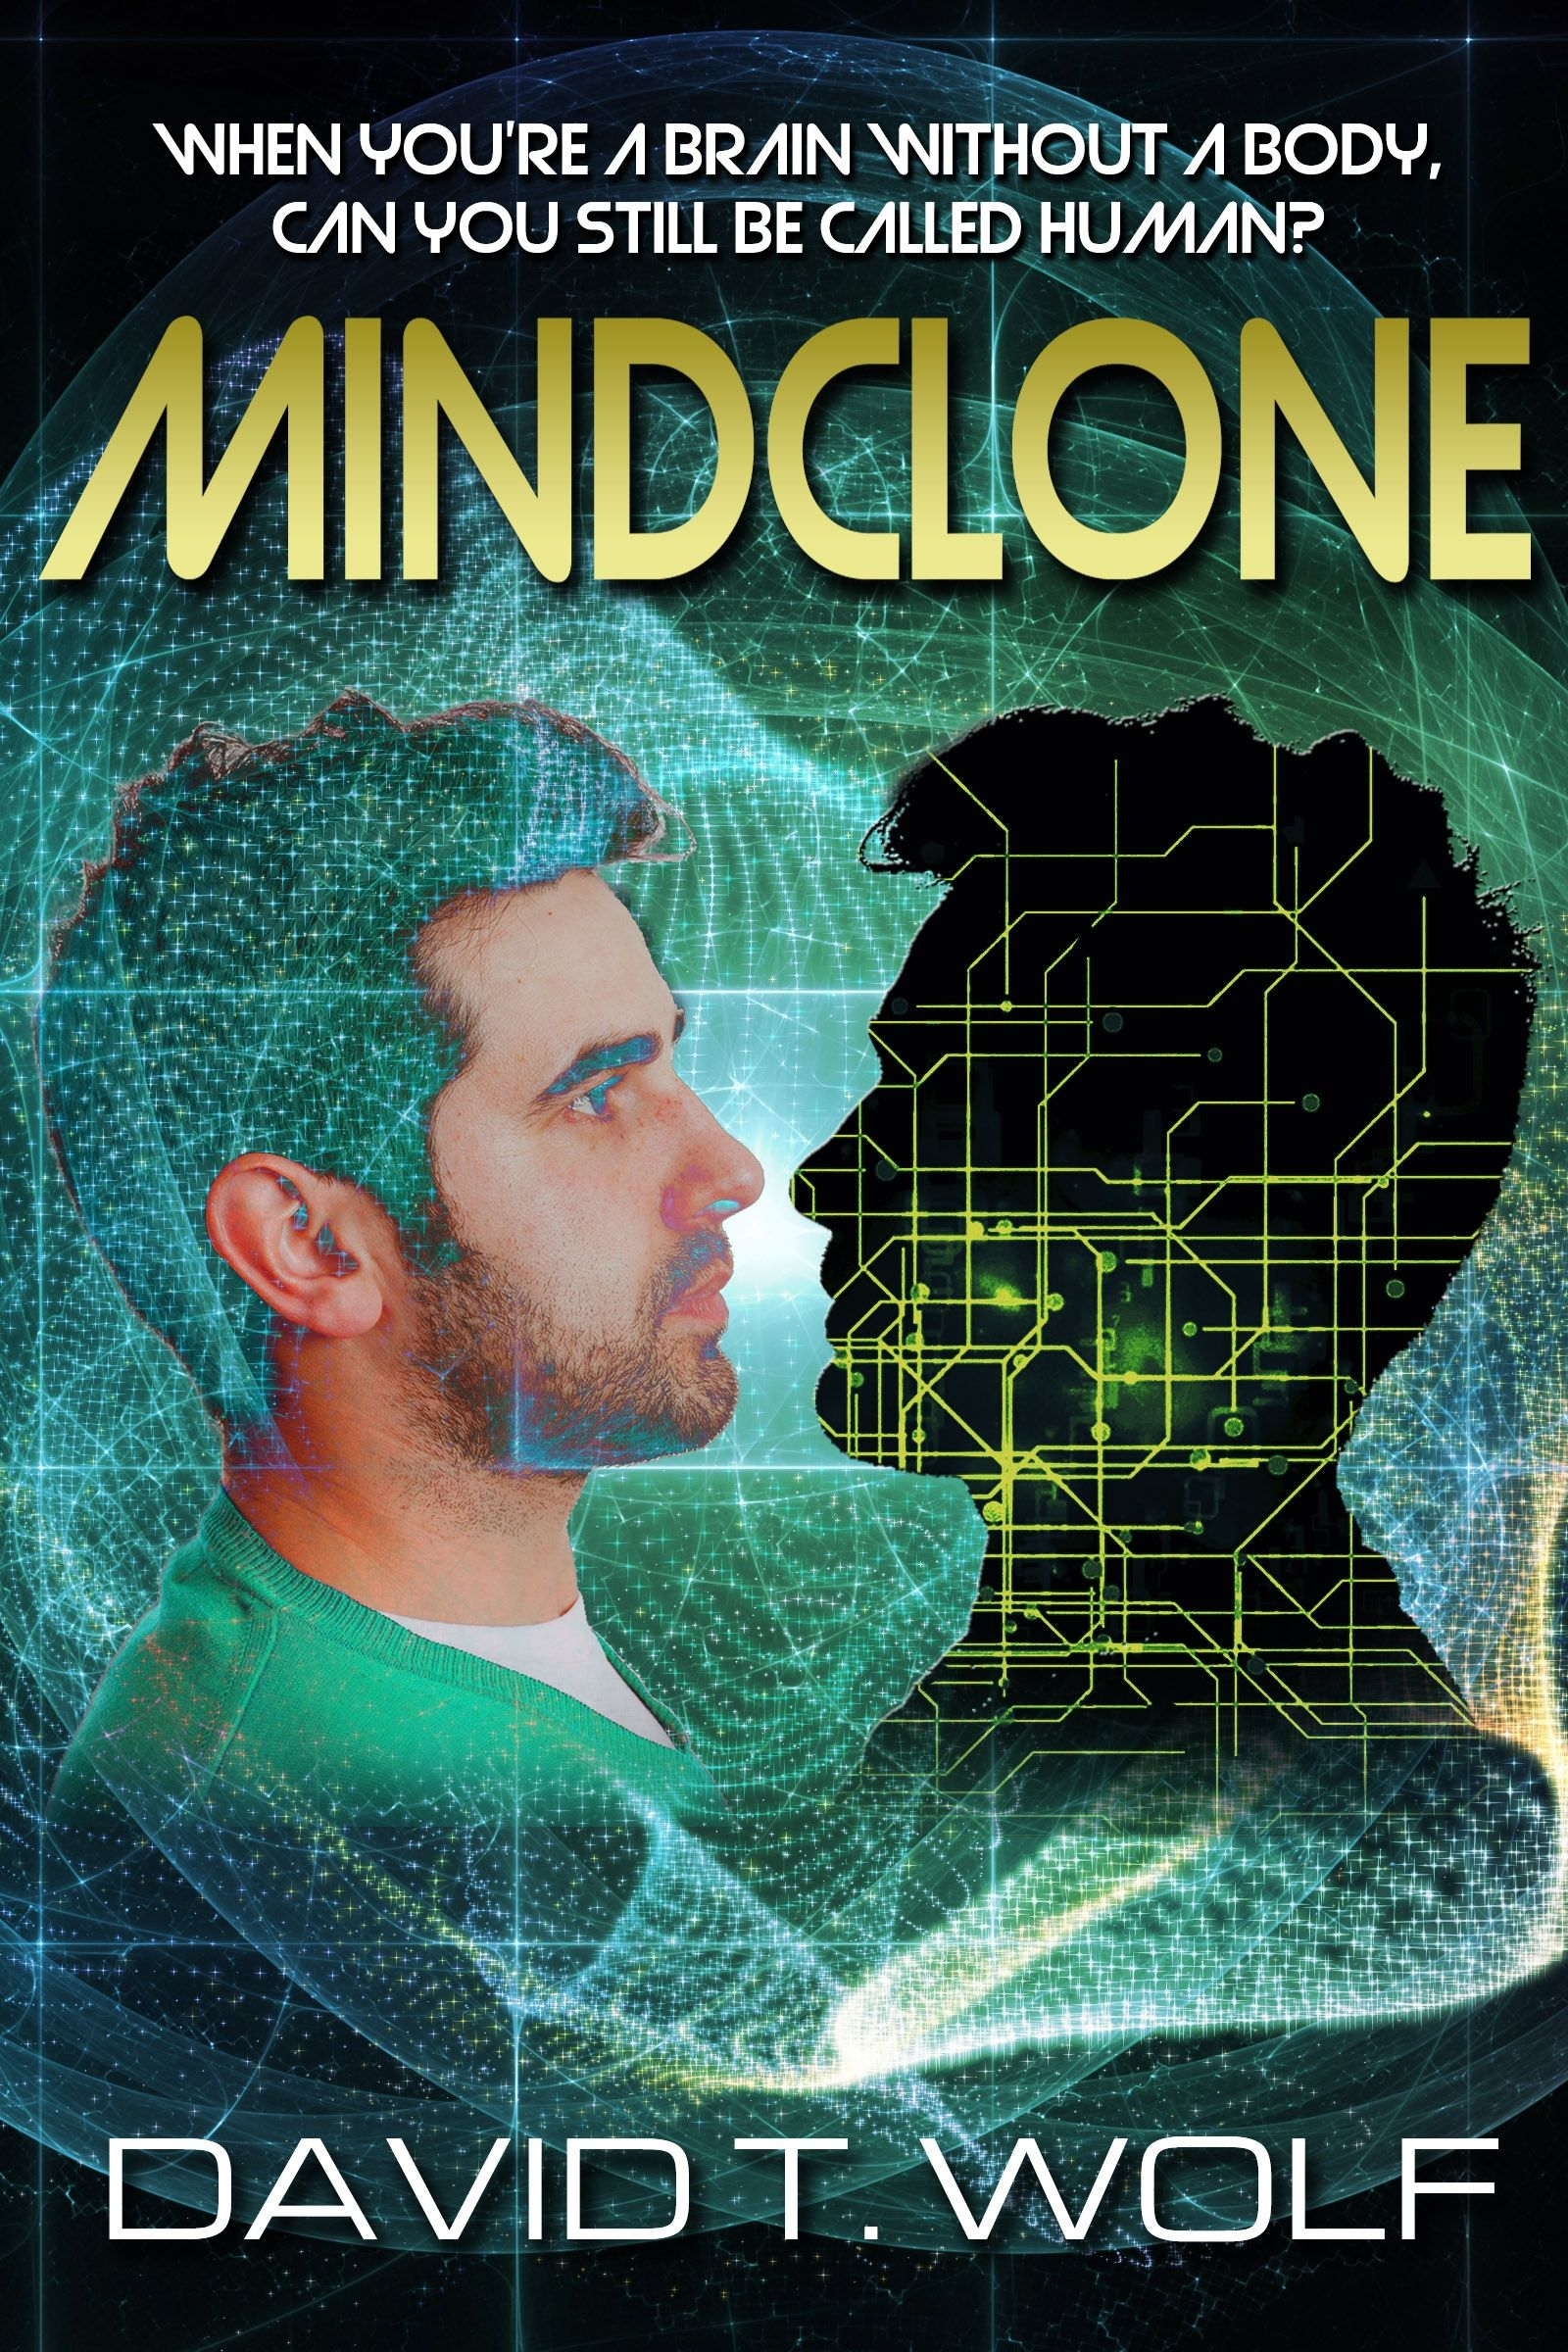 Here's the hot new cover of Mindclone, the 5star upload